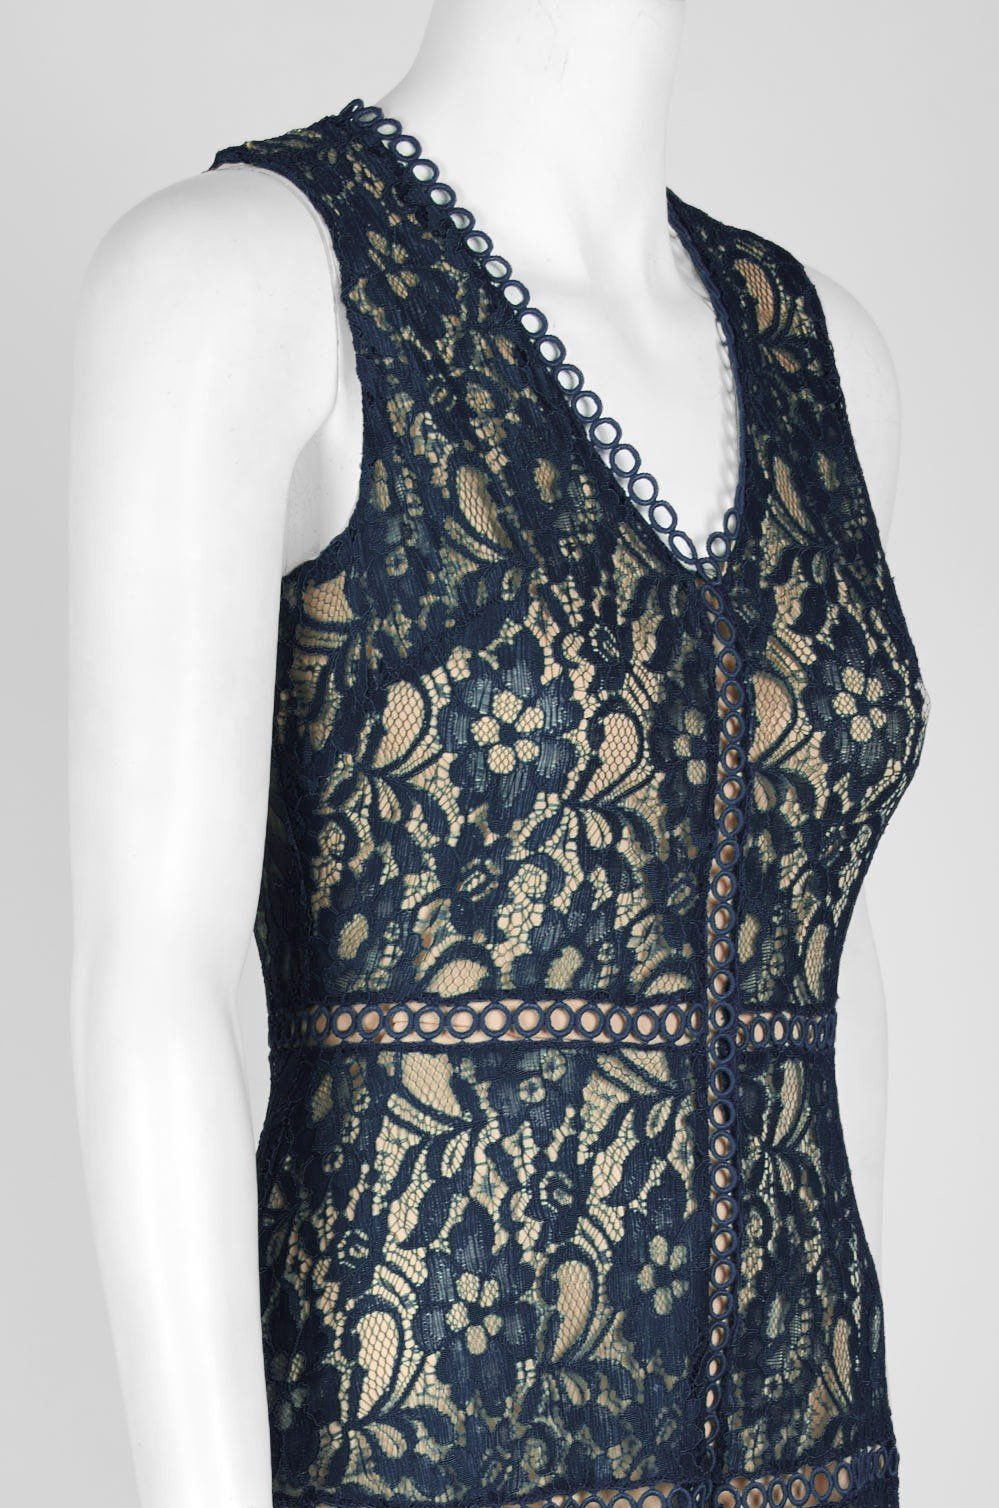 Taylor - 1219M Sleeveless Floral Lace Handkerchief Hem Dress In Blue